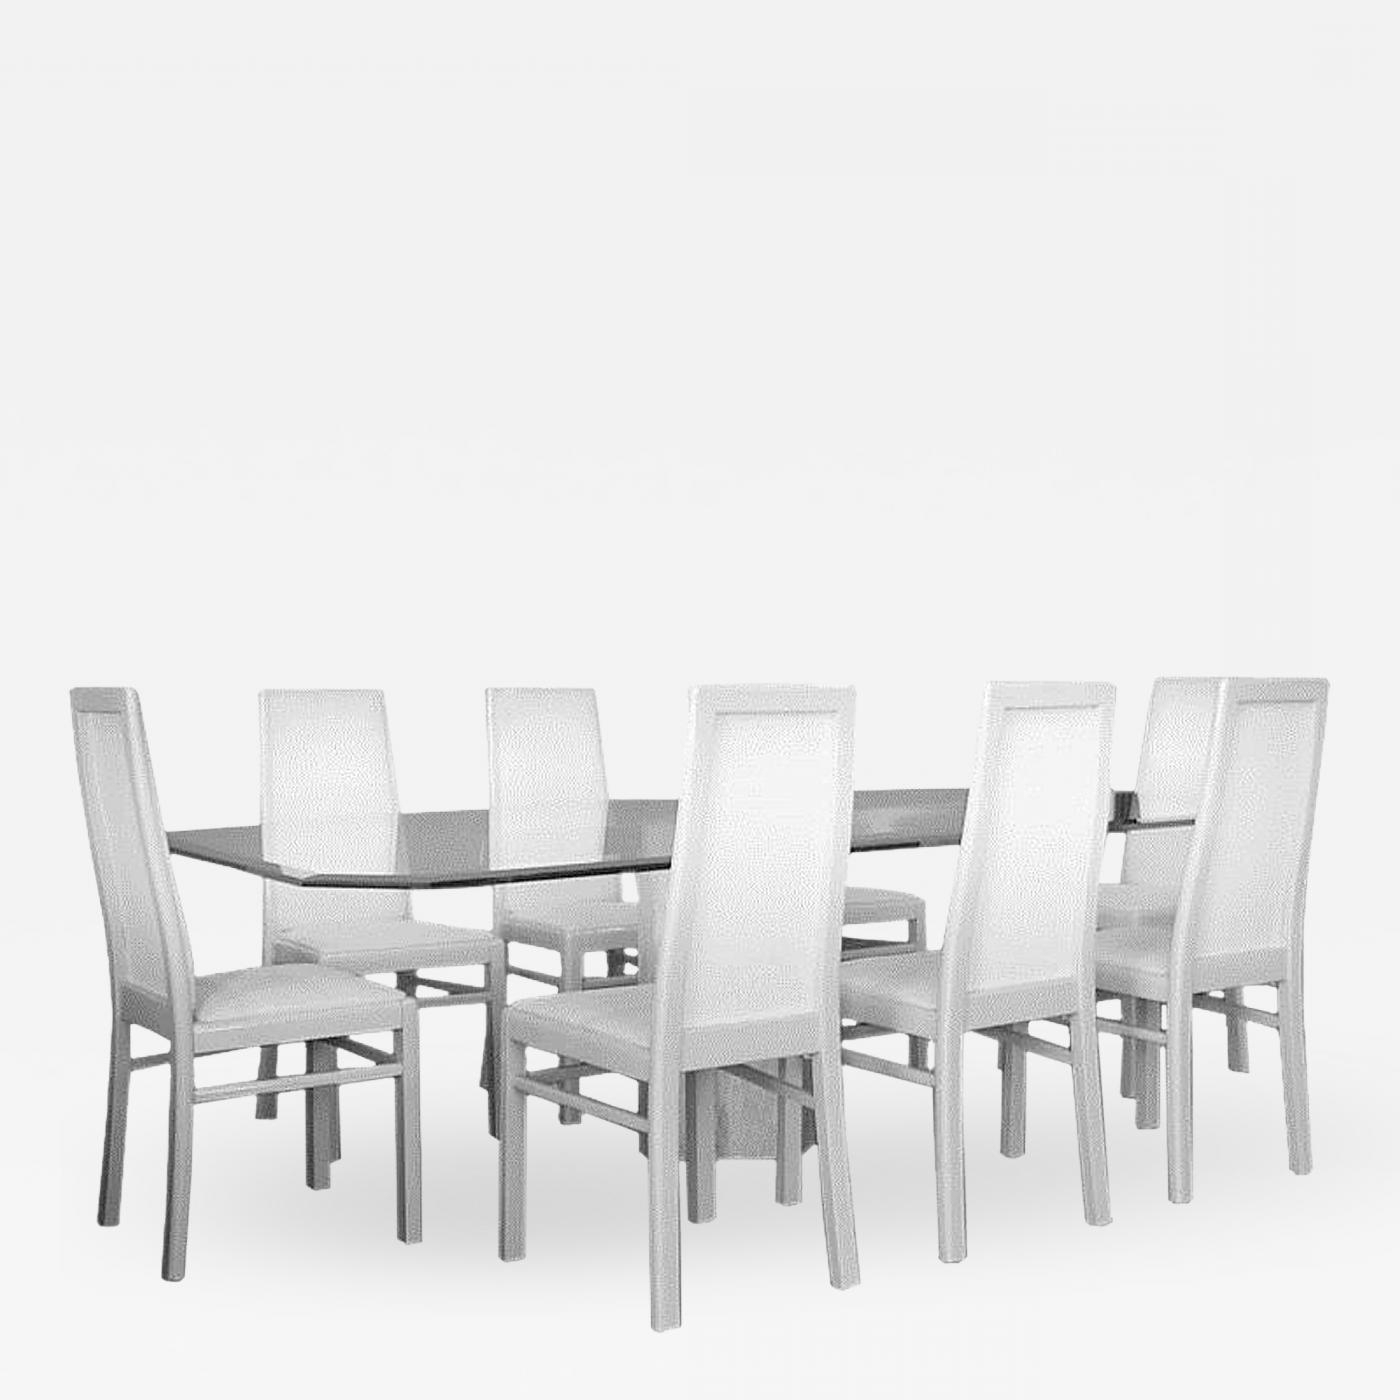 Dining Tables For Eight pertaining to Most Recent American Travertine Base Dining Table And Eight Chairs